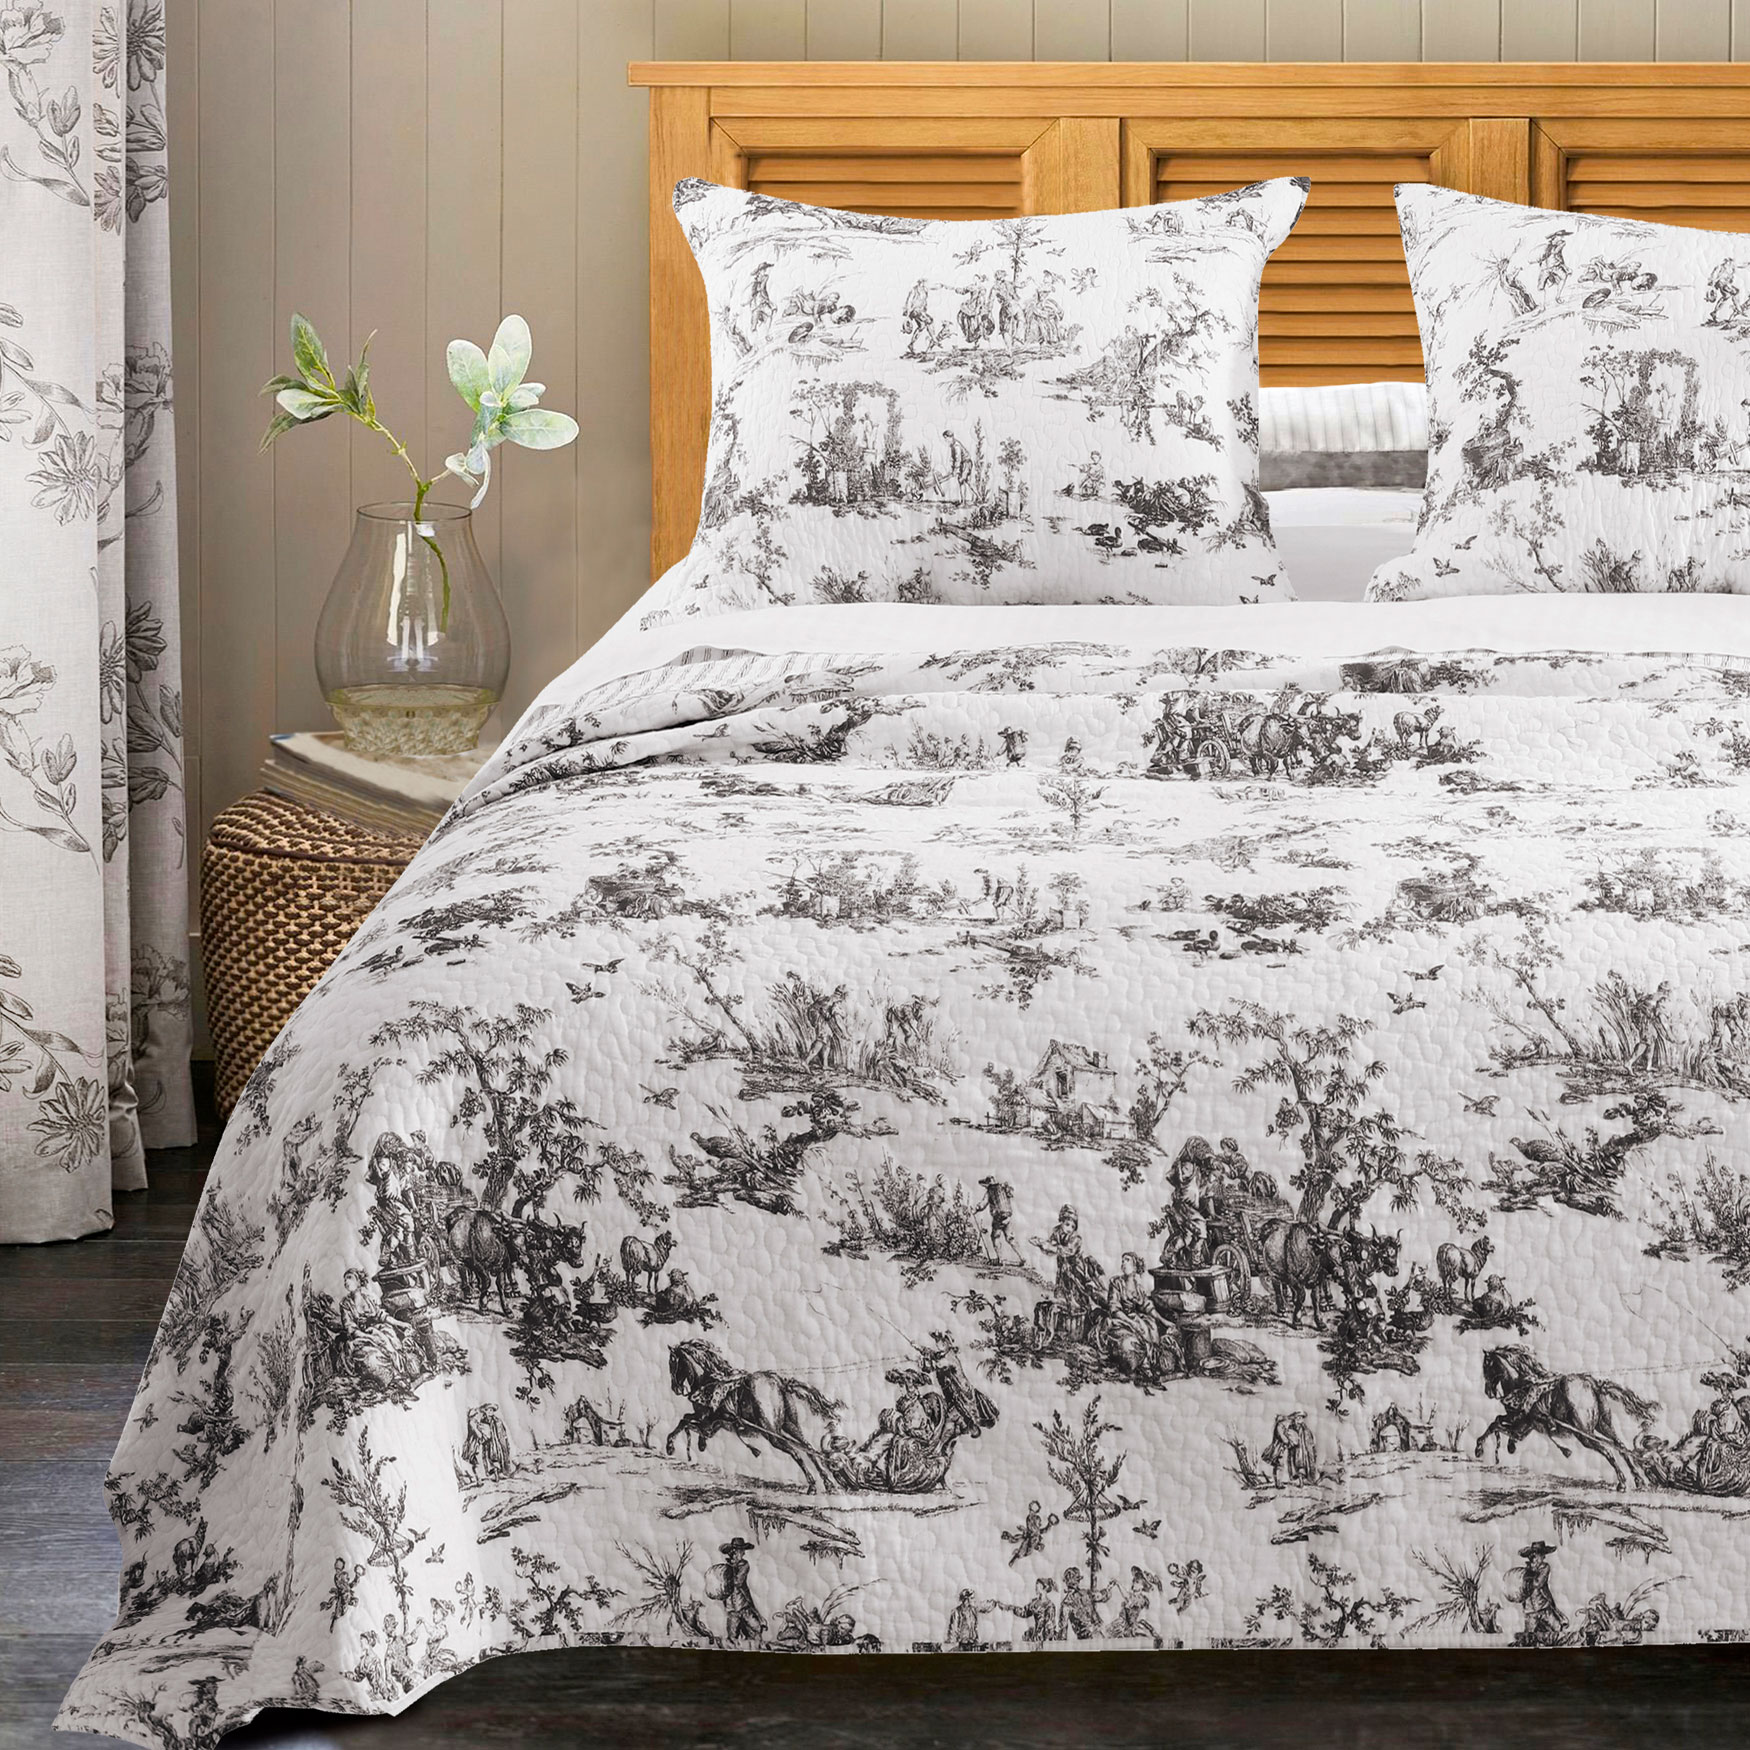 Classic Toile Bedspread Set by Greenland Home Fashions,